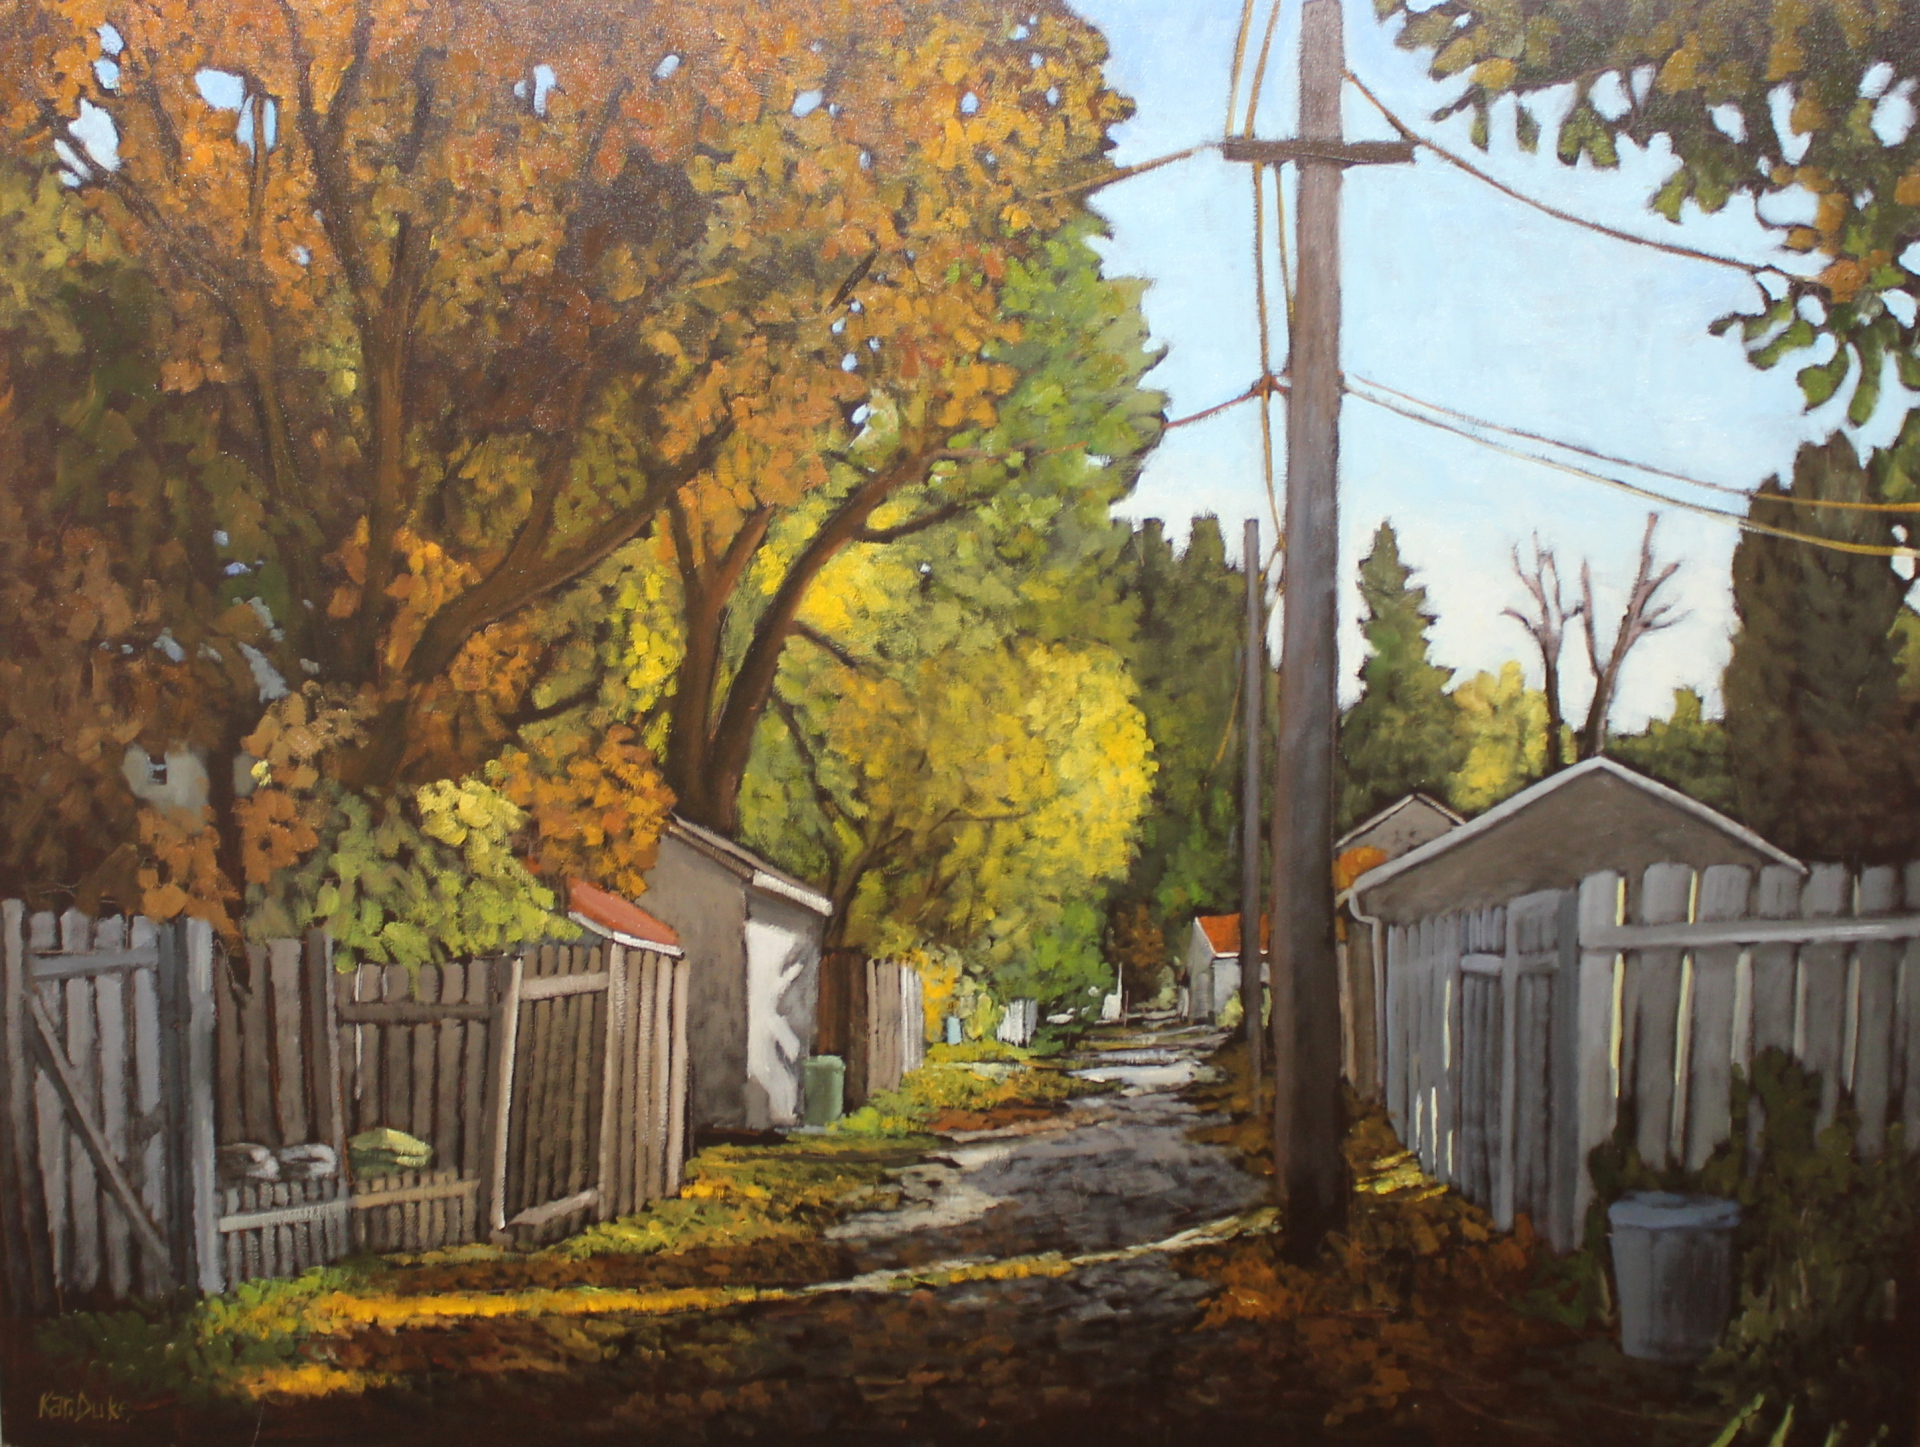 THE AUTUMN SHED - 36X48 - OIL ON CANVAS - 2016